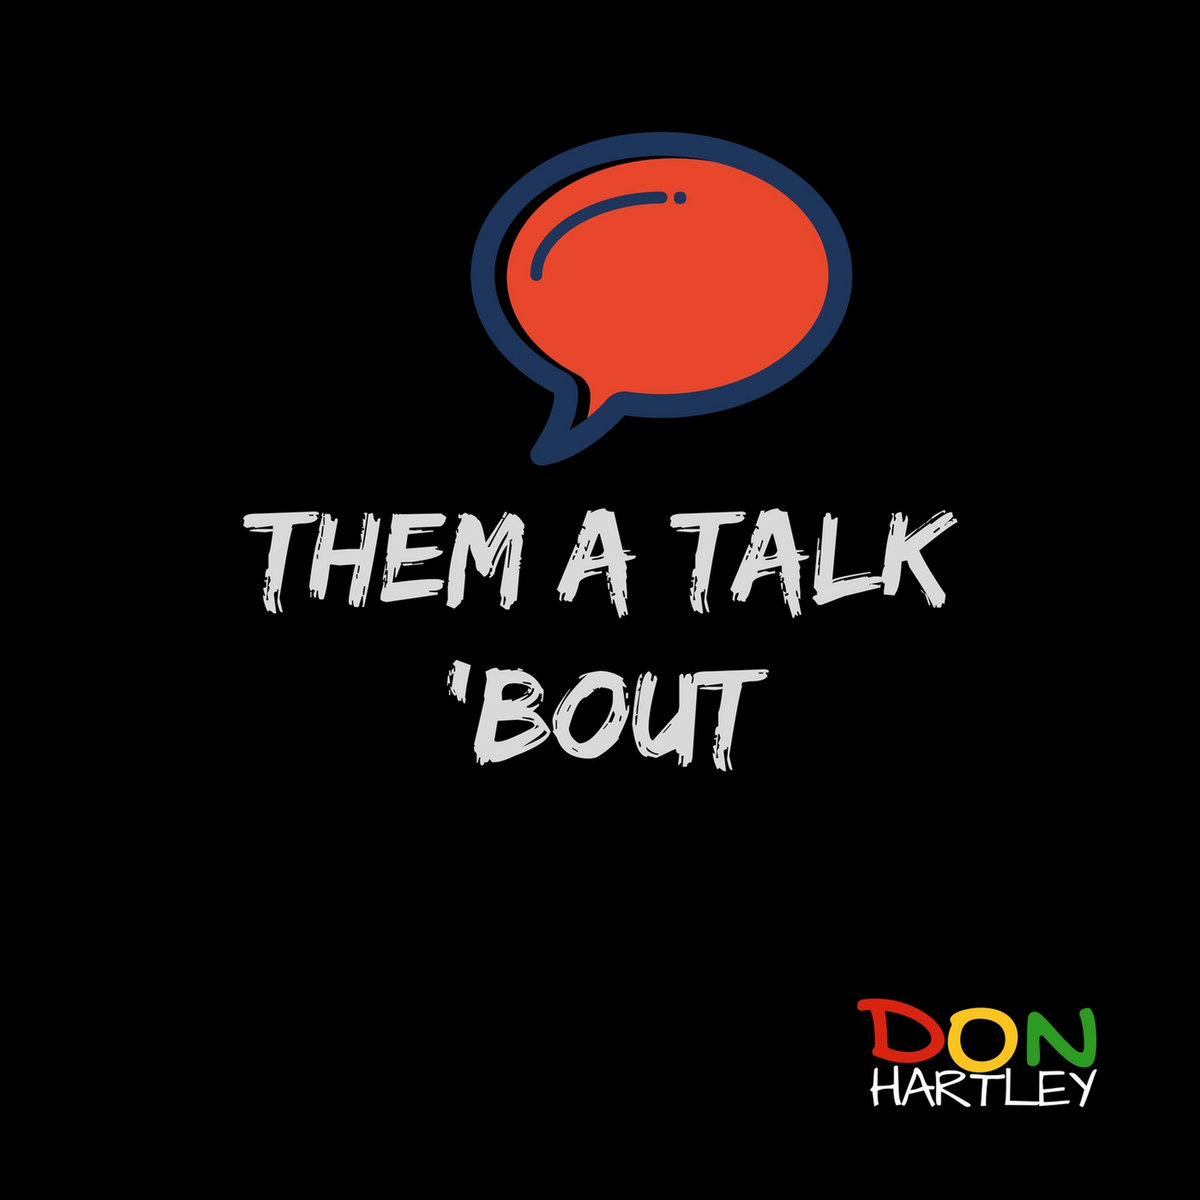 Them A Talk 'Bout by Don Hartley